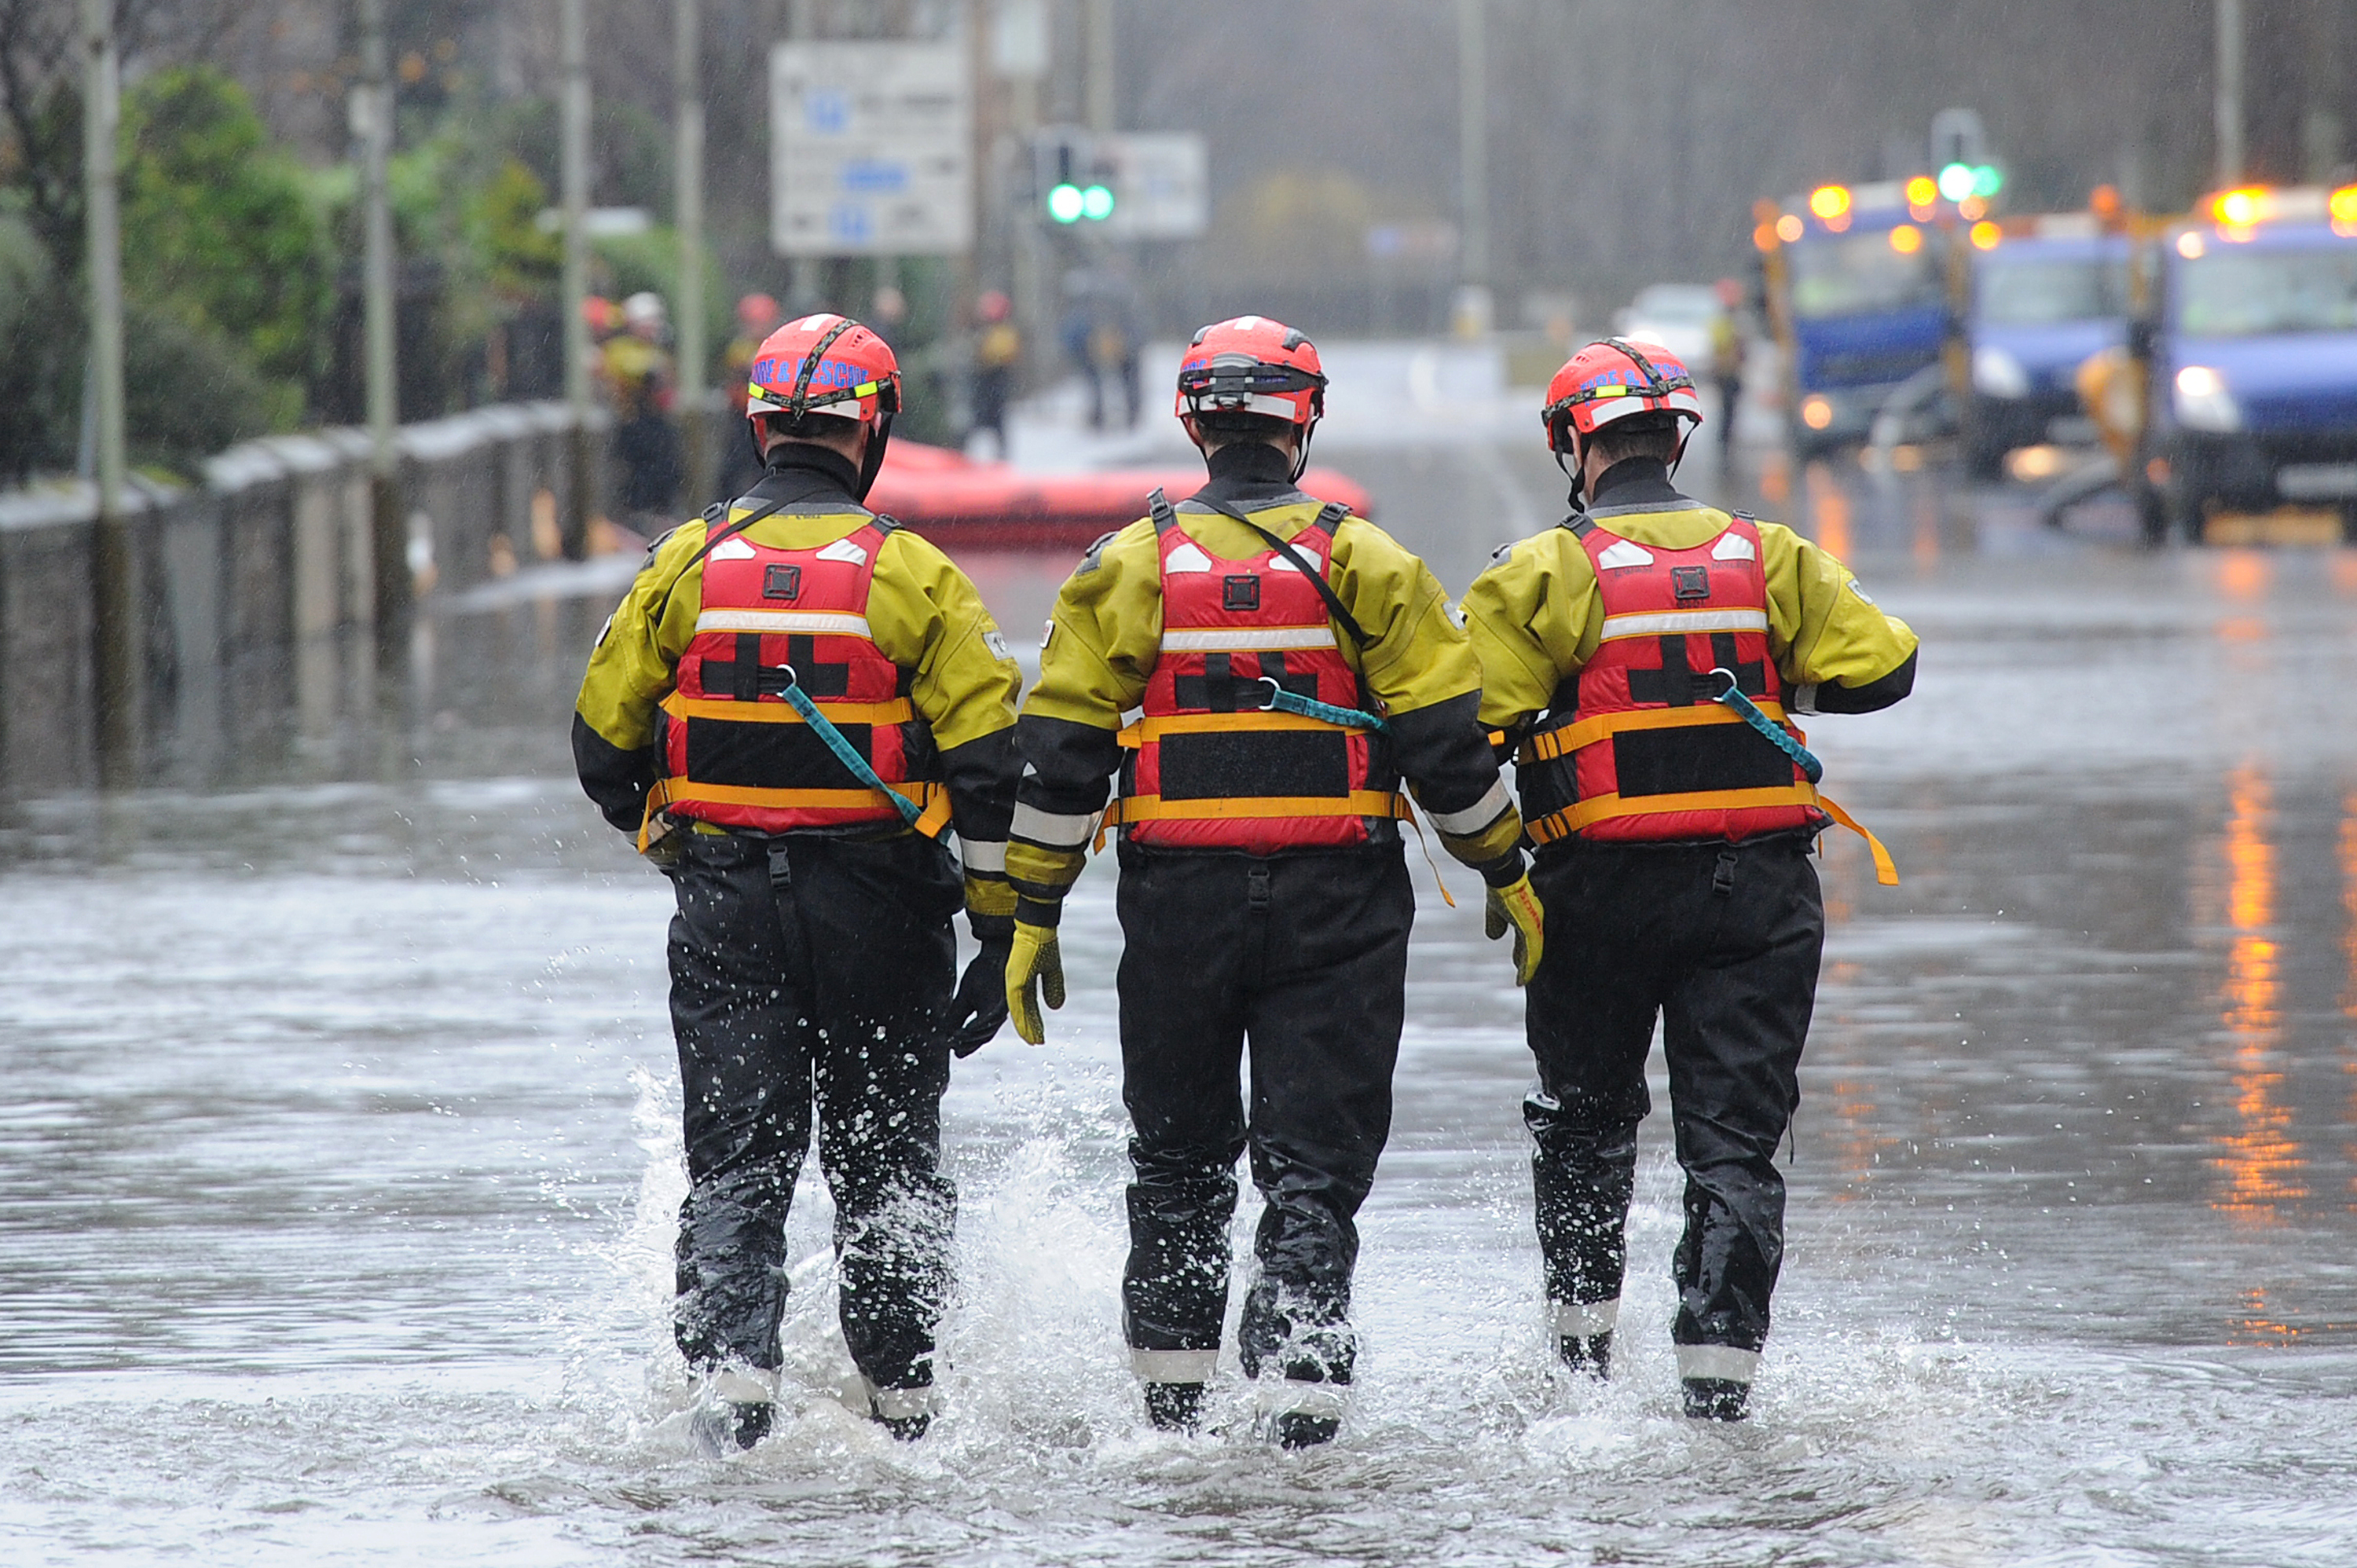 Firefighters dealing with flooding on Marshall Place in Perth earlier this year.